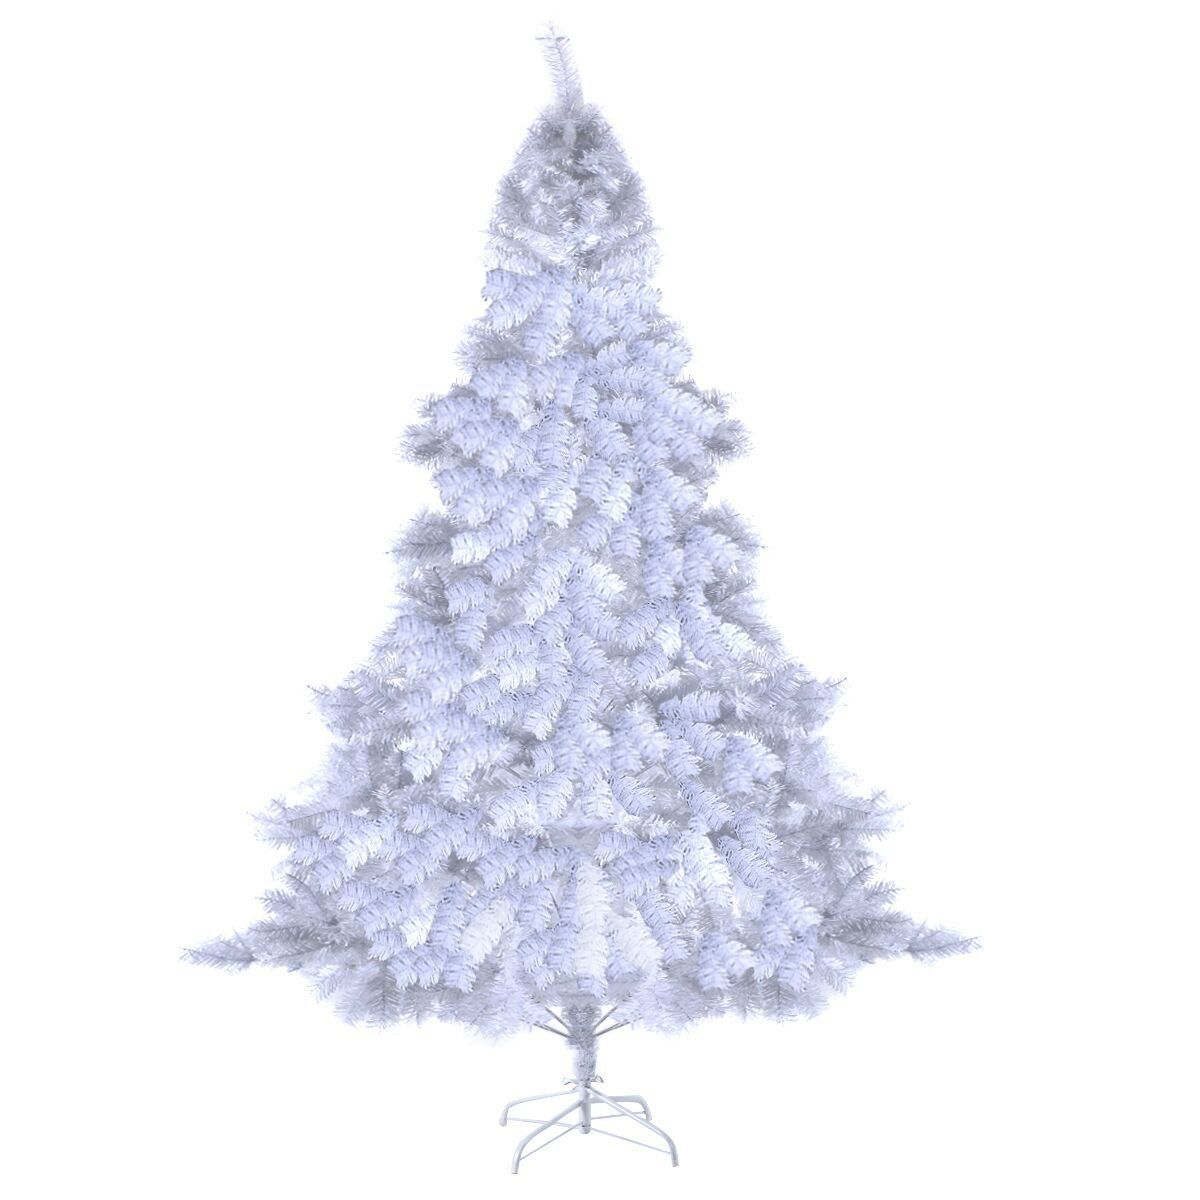 Most Natural Looking Artificial Christmas Trees